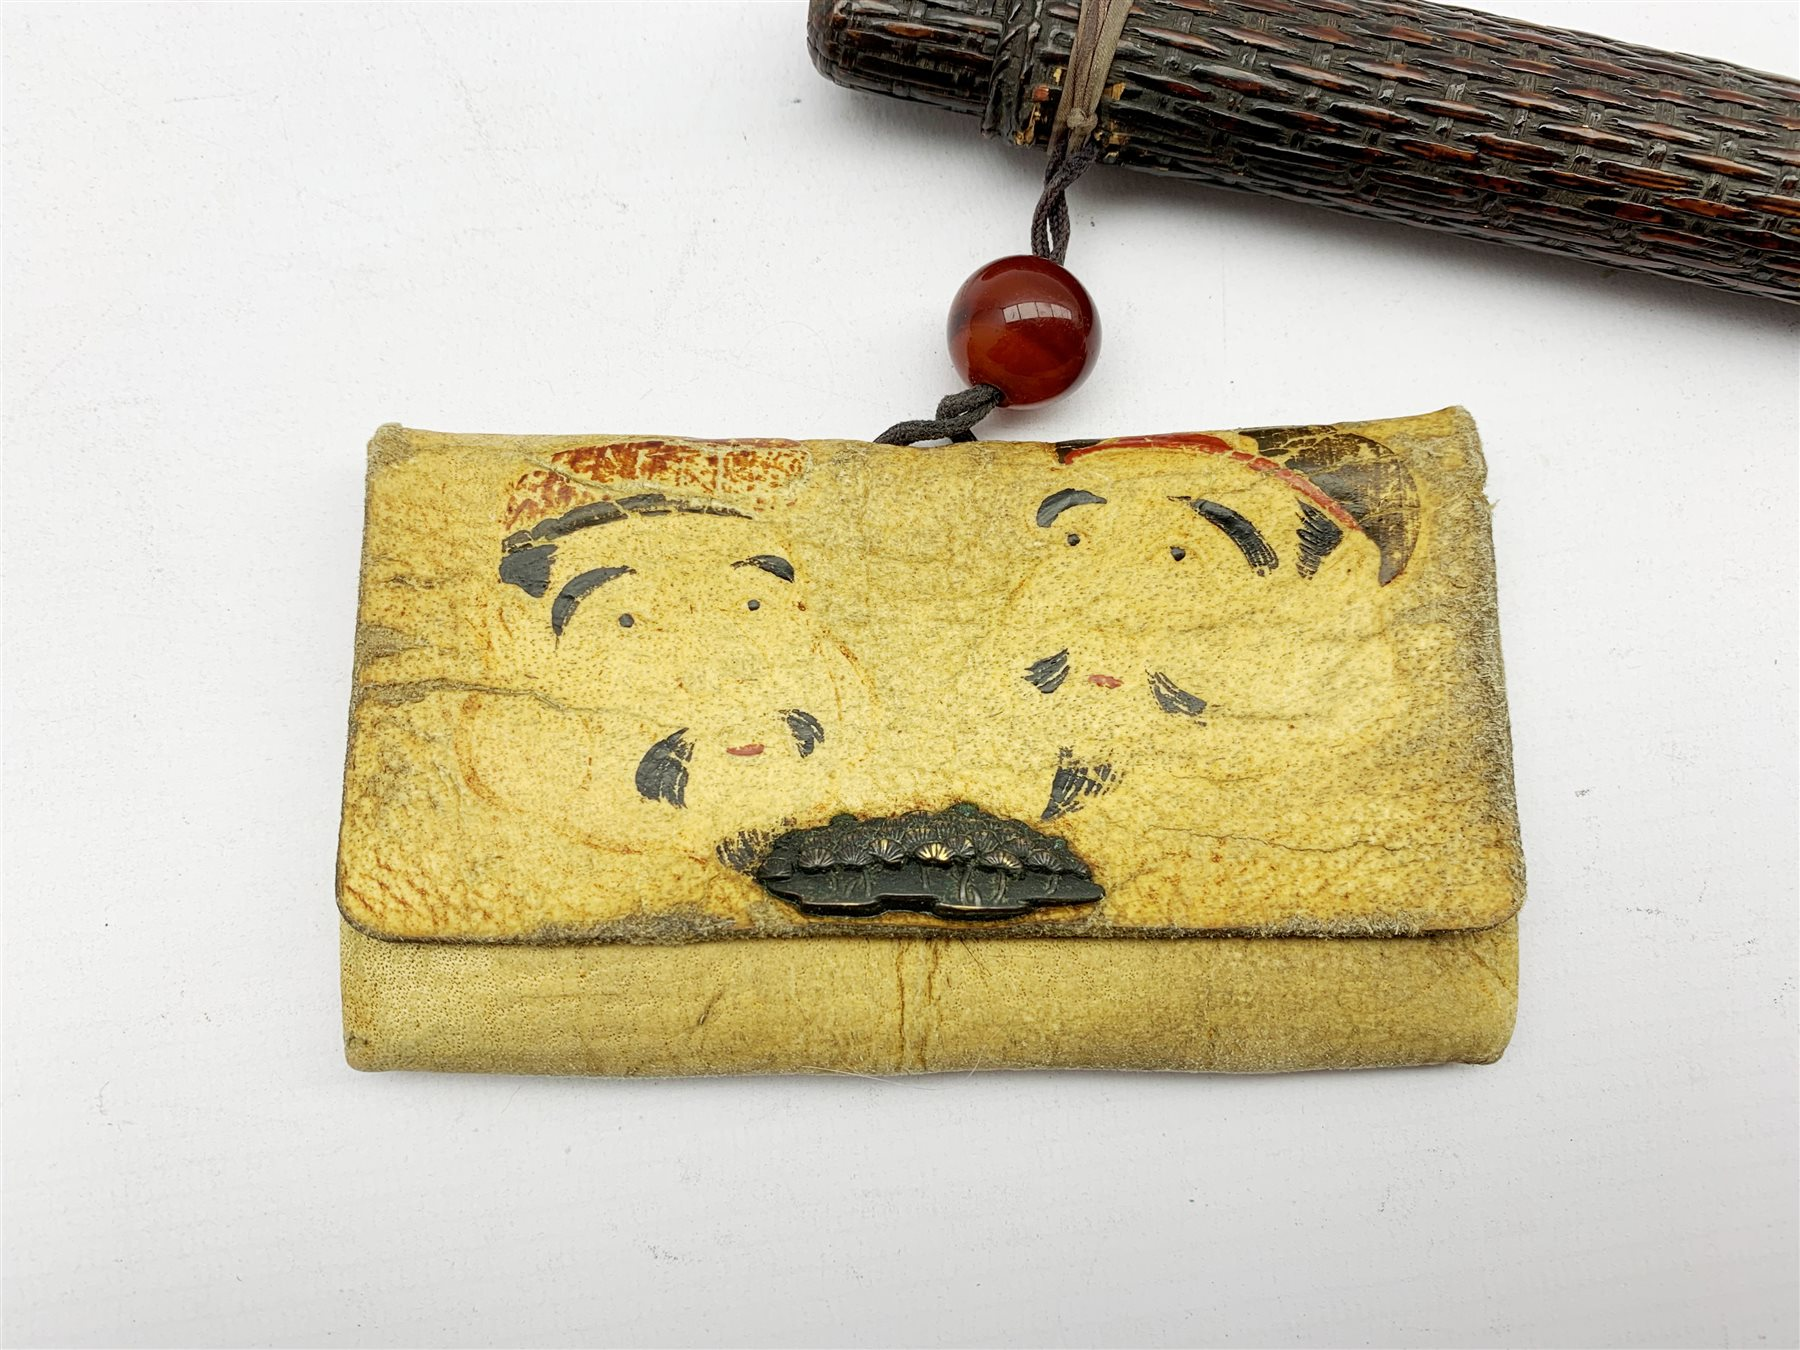 19th century Japanese embroidered tobacco pouch (tabako-ire) with bronze floral moulded mae-kanagu - Image 2 of 5